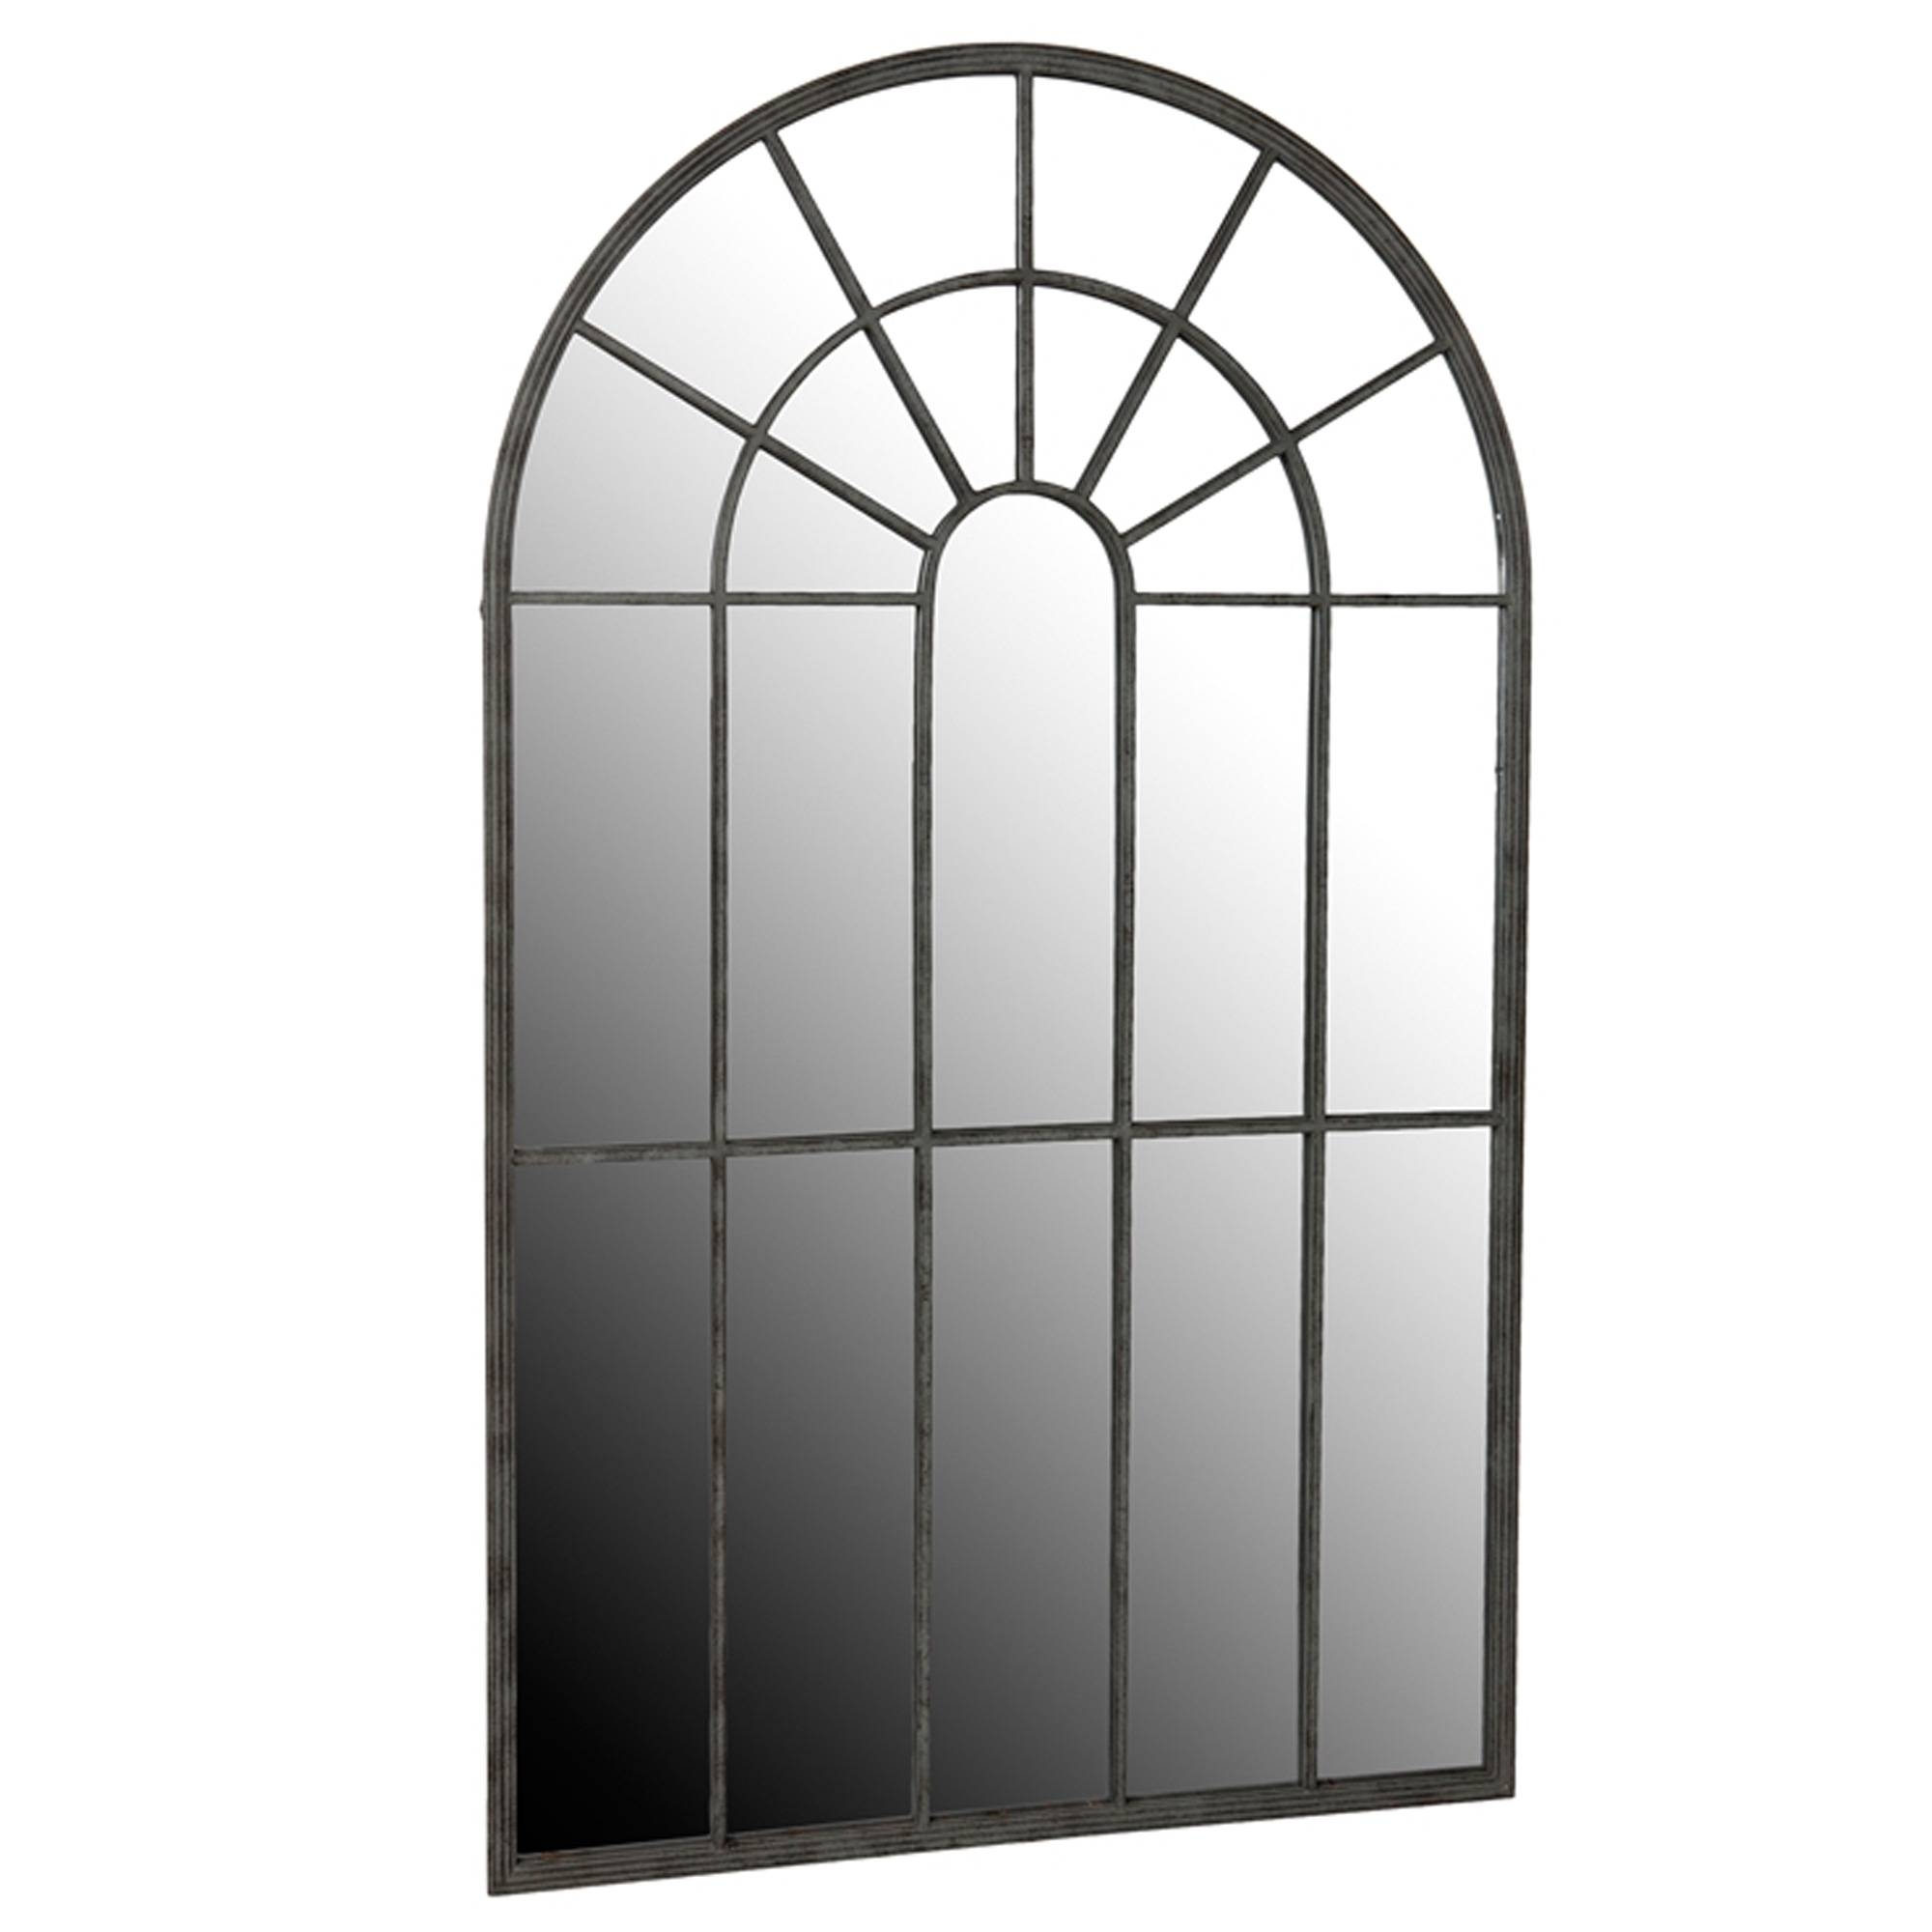 Outdoor Garden Shutter Mirror | No 44 Furniture, Cobham with regard to Metal Garden Mirrors (Image 12 of 15)